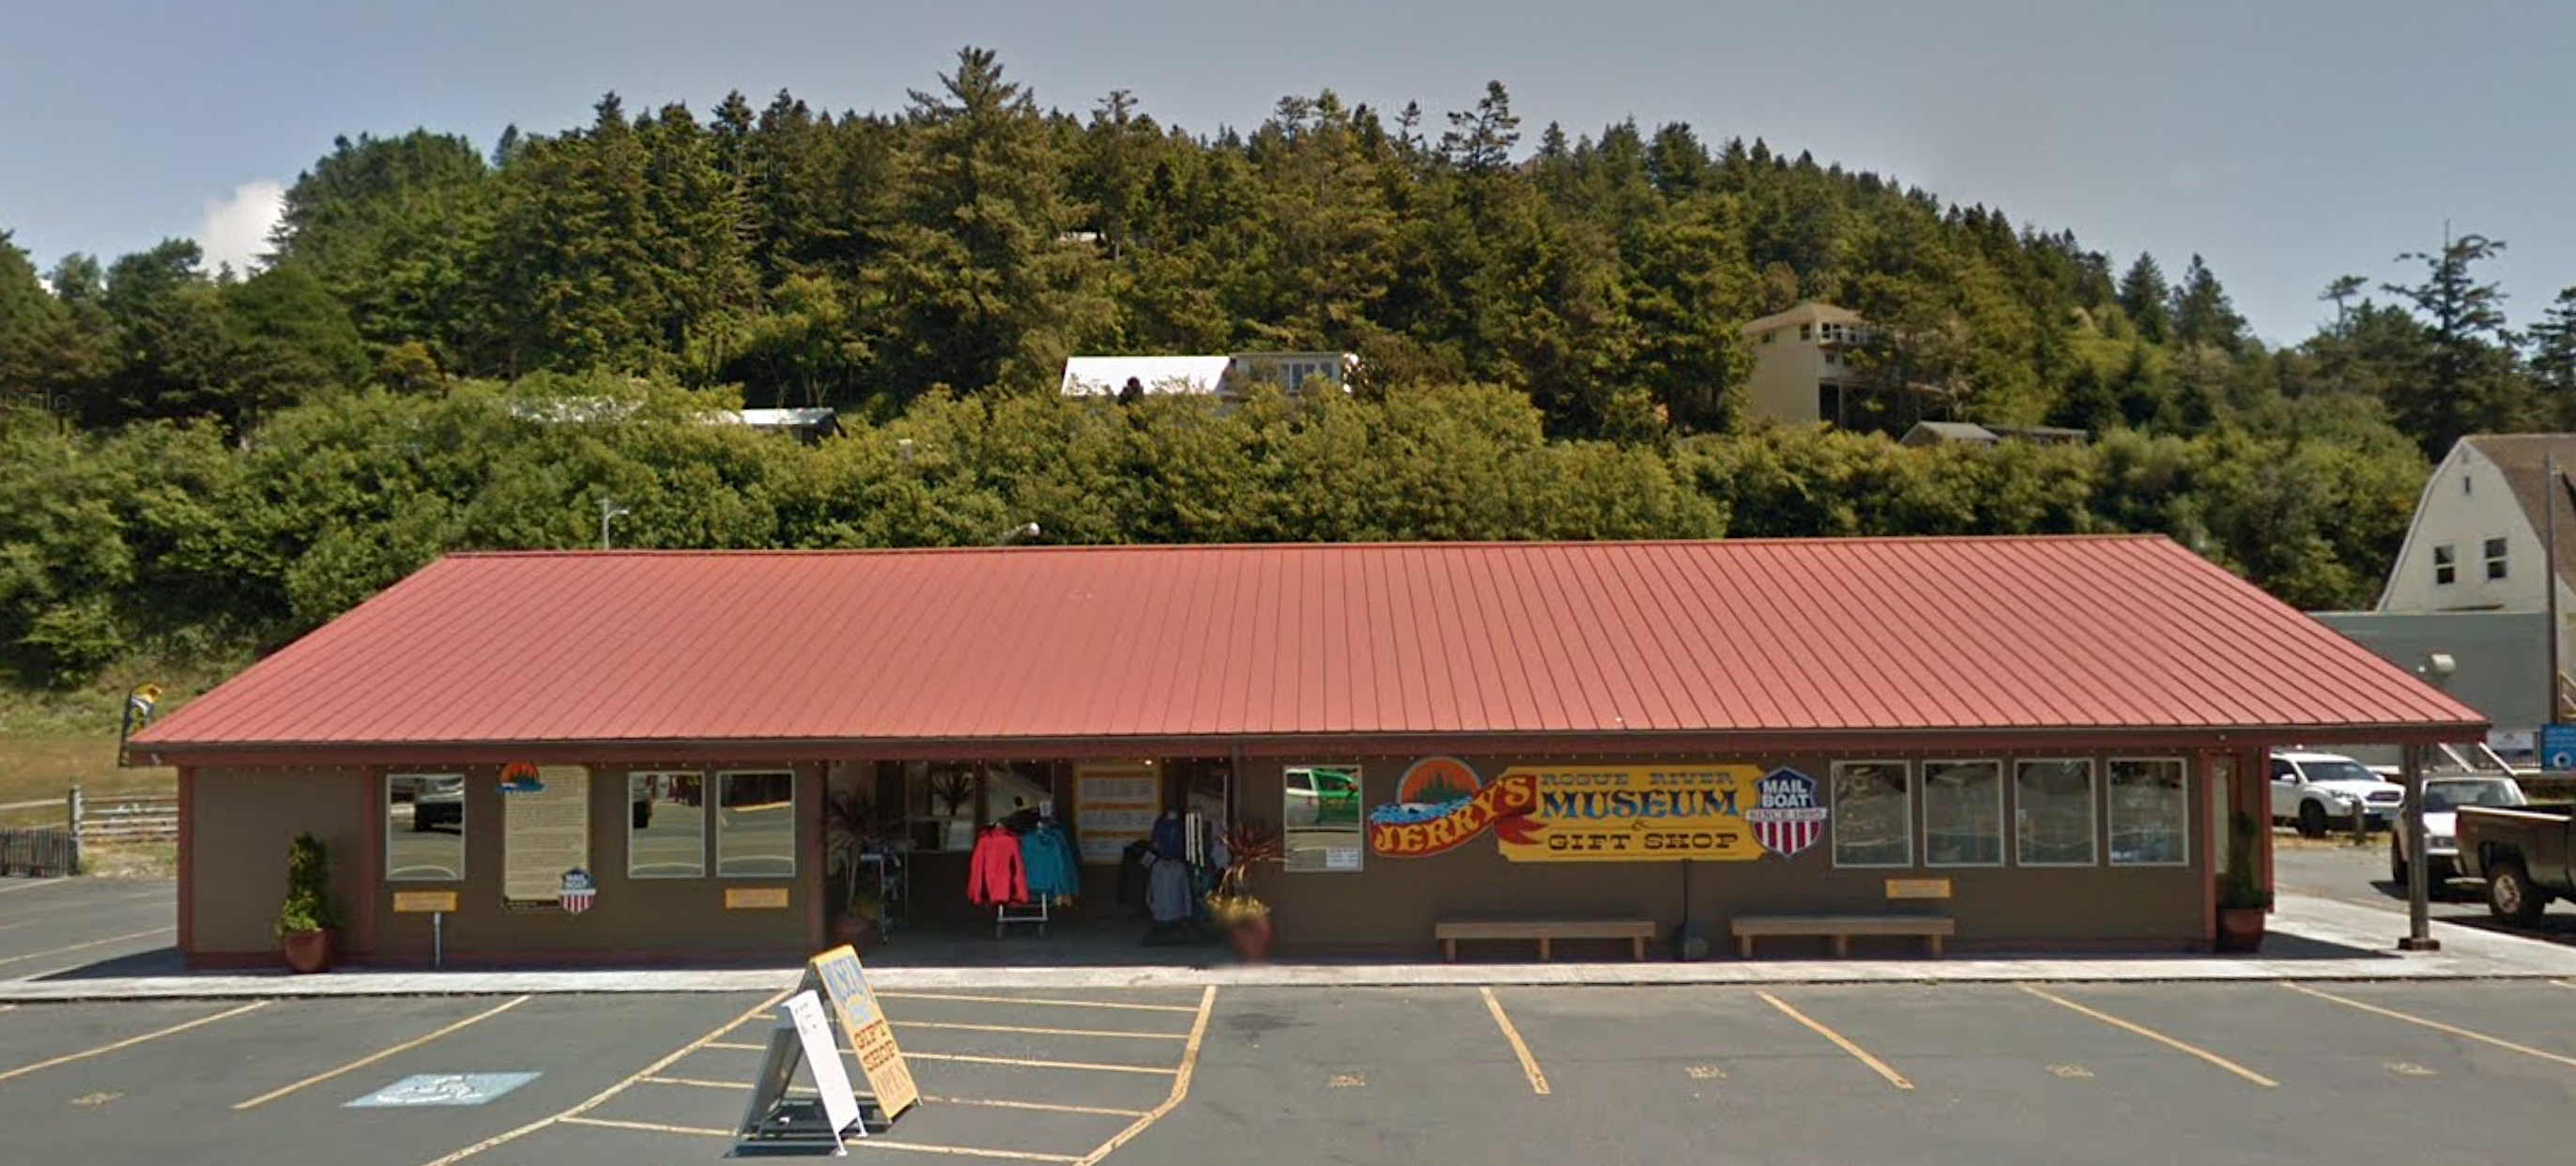 There's A Fascinating Museum Hiding In The Most Unlikely Place In Gold Beach, Oregon, And It's Free To Visit